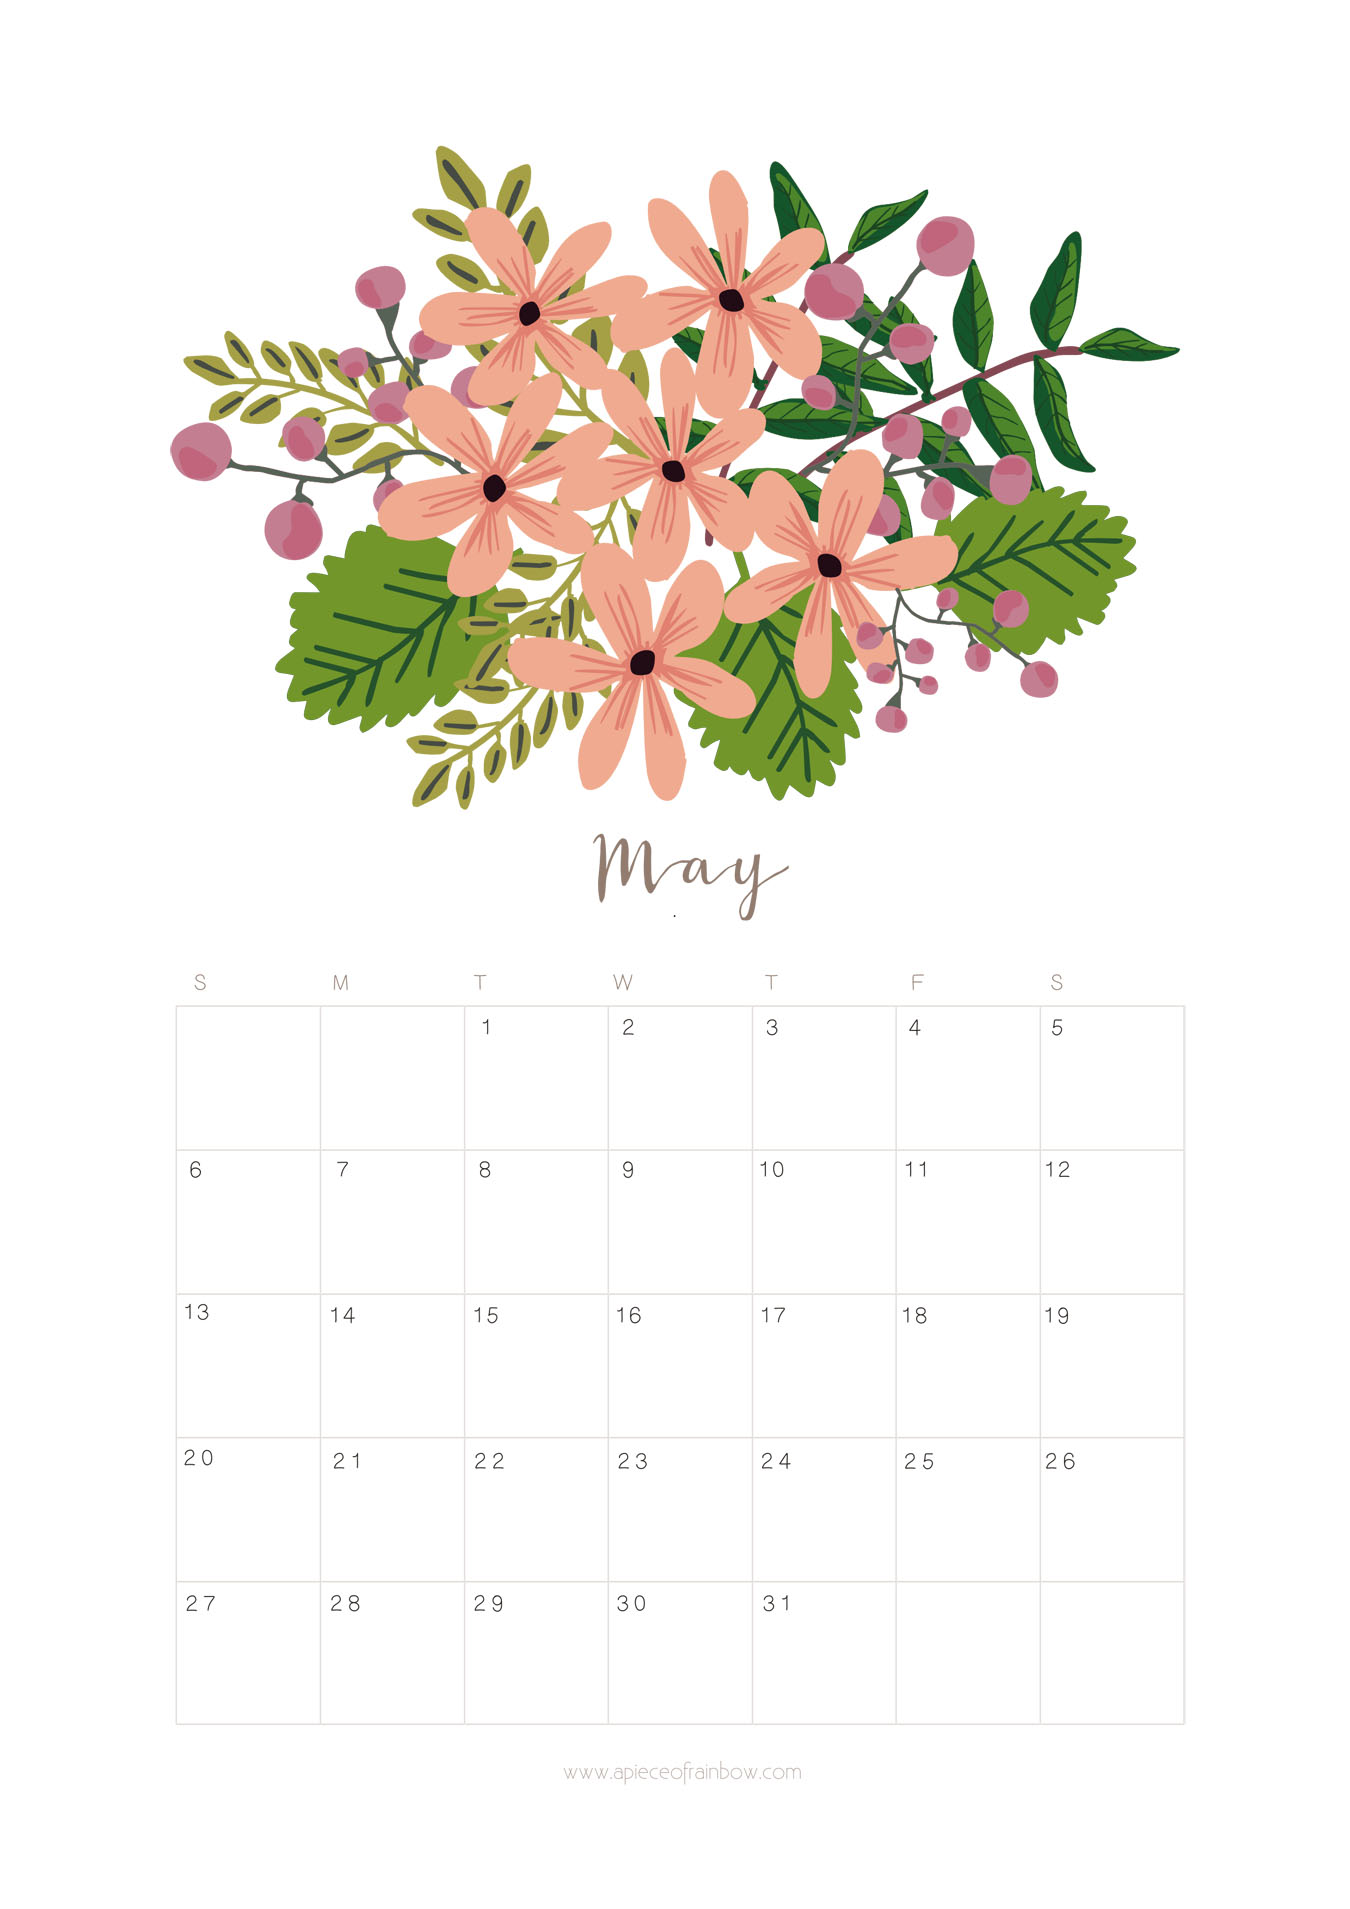 May 2018 Floral Calendar Page